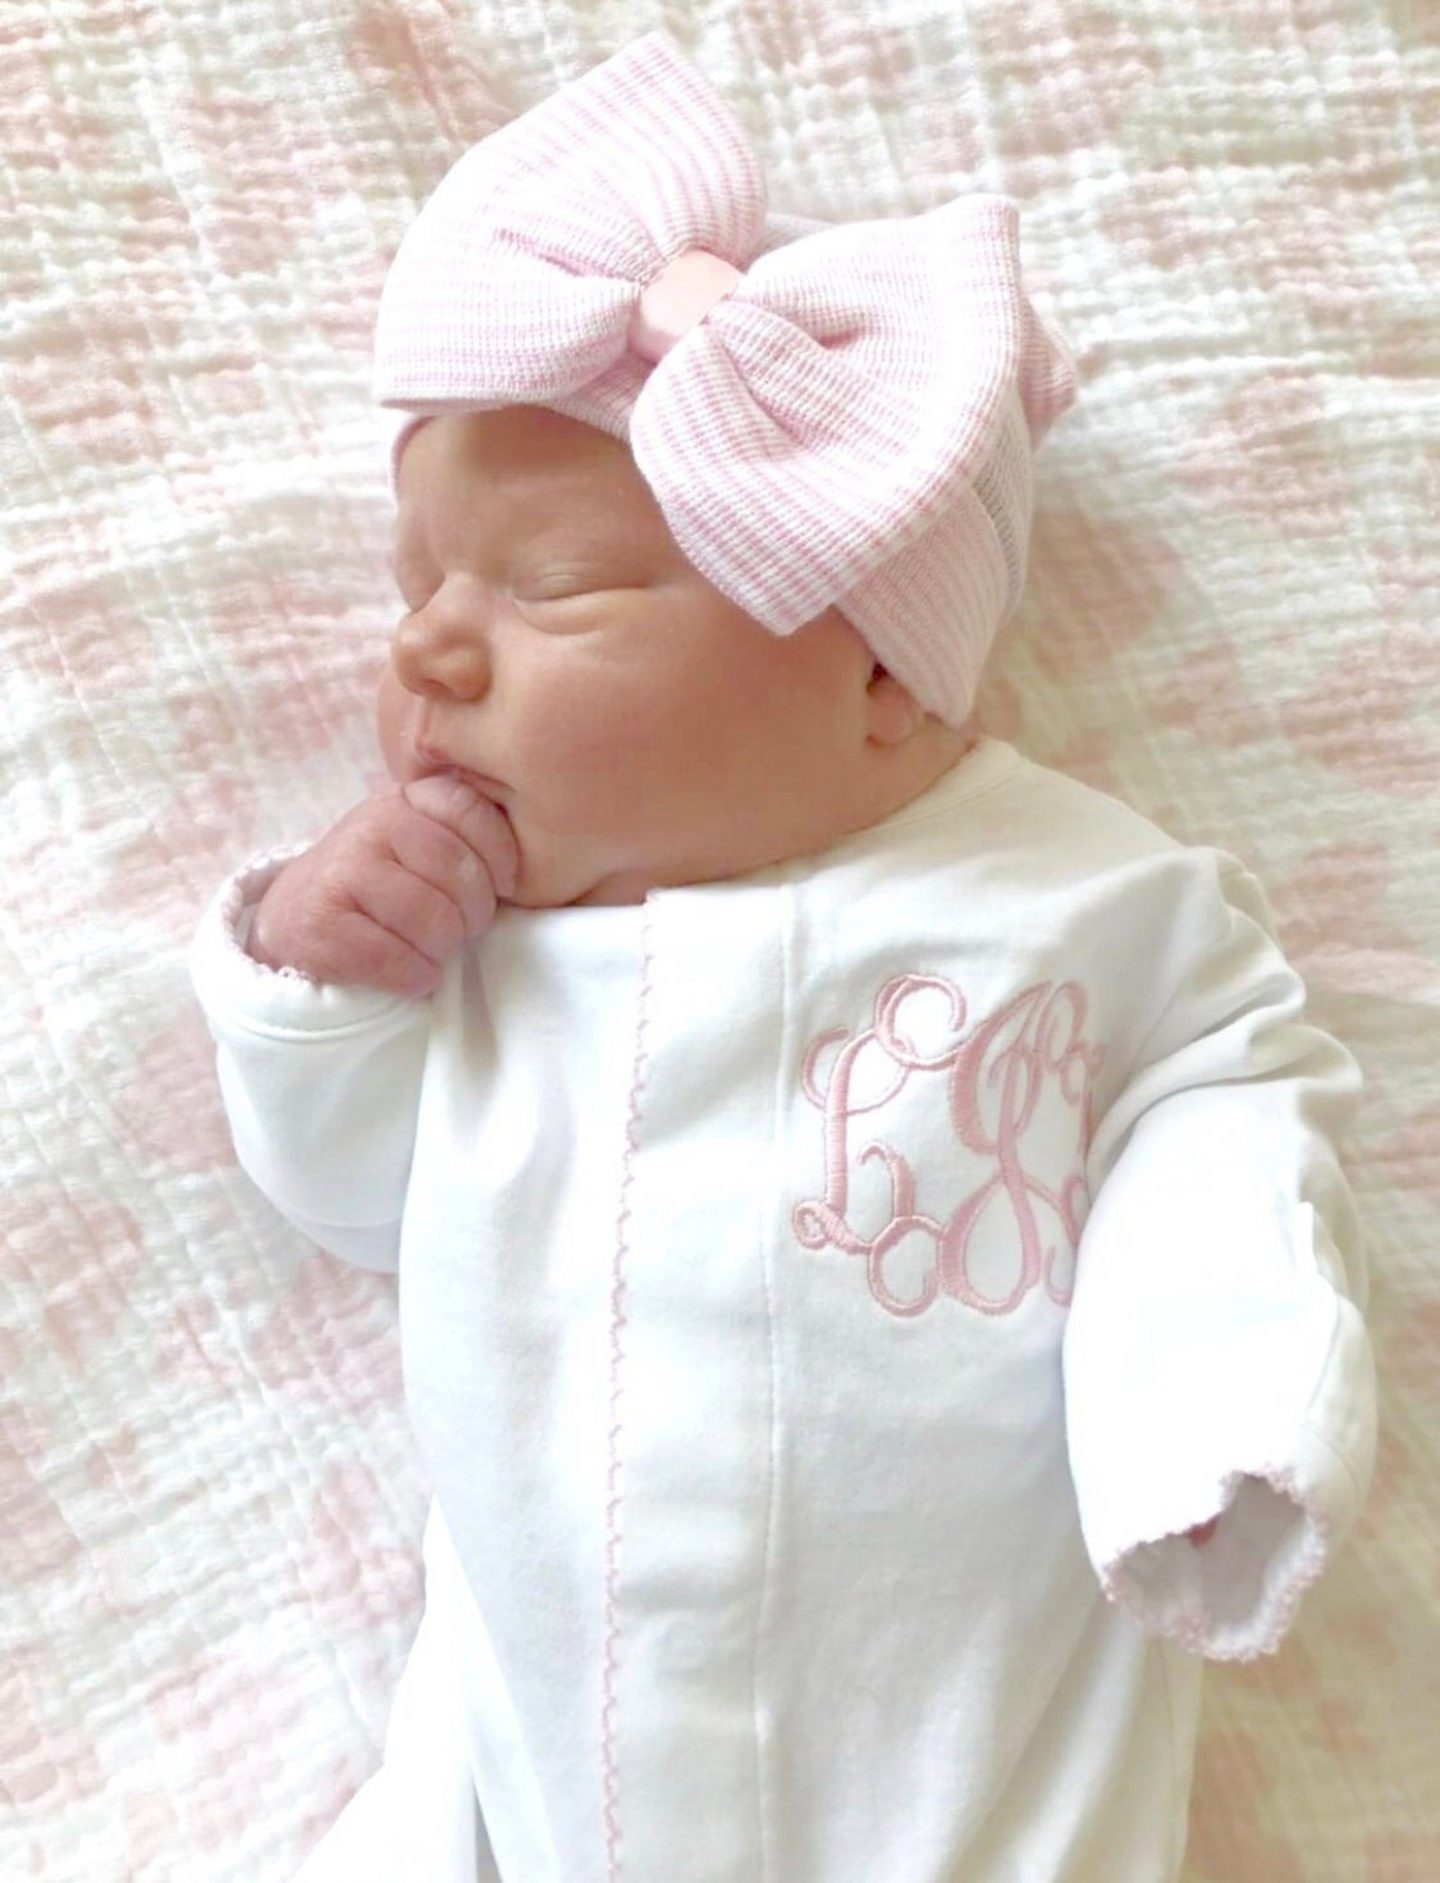 White and pink baby clothes for newborns with ribbons